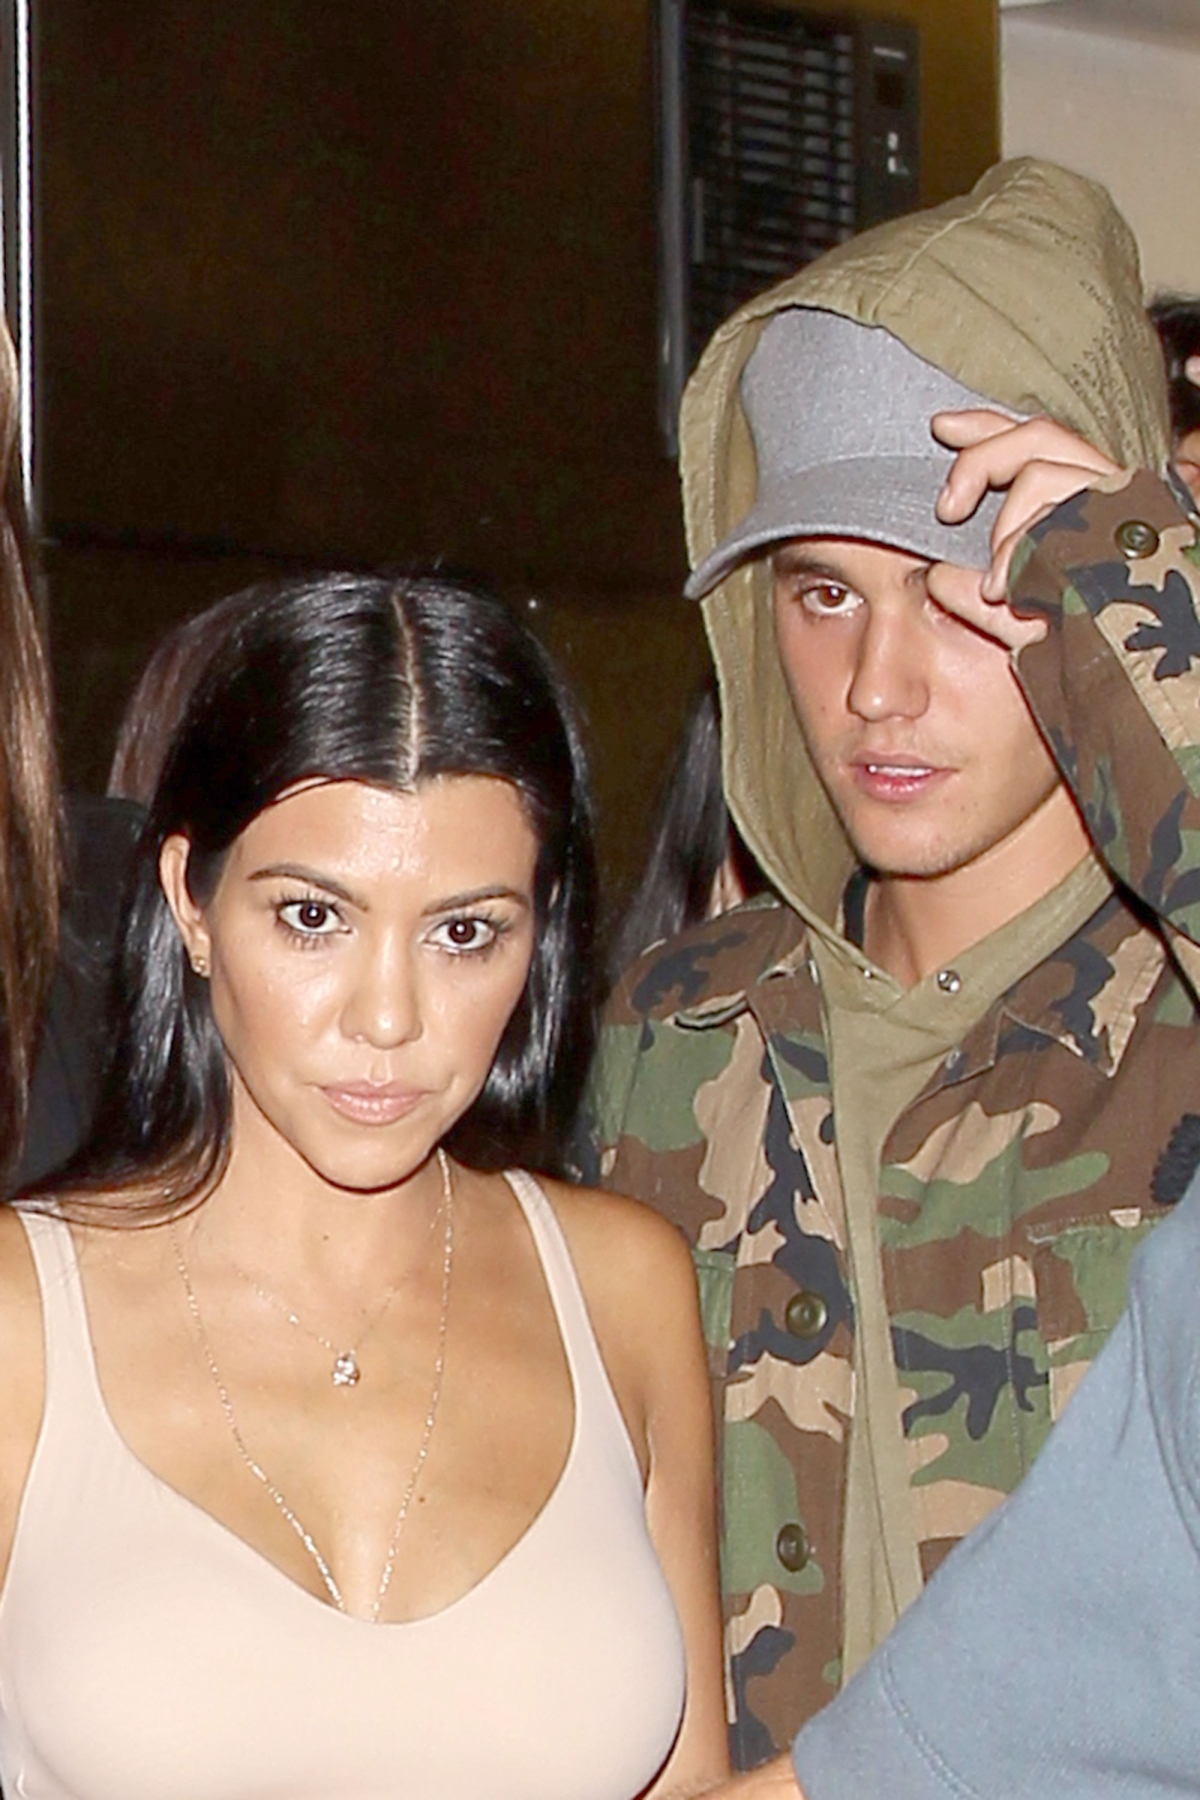 who is jb dating now